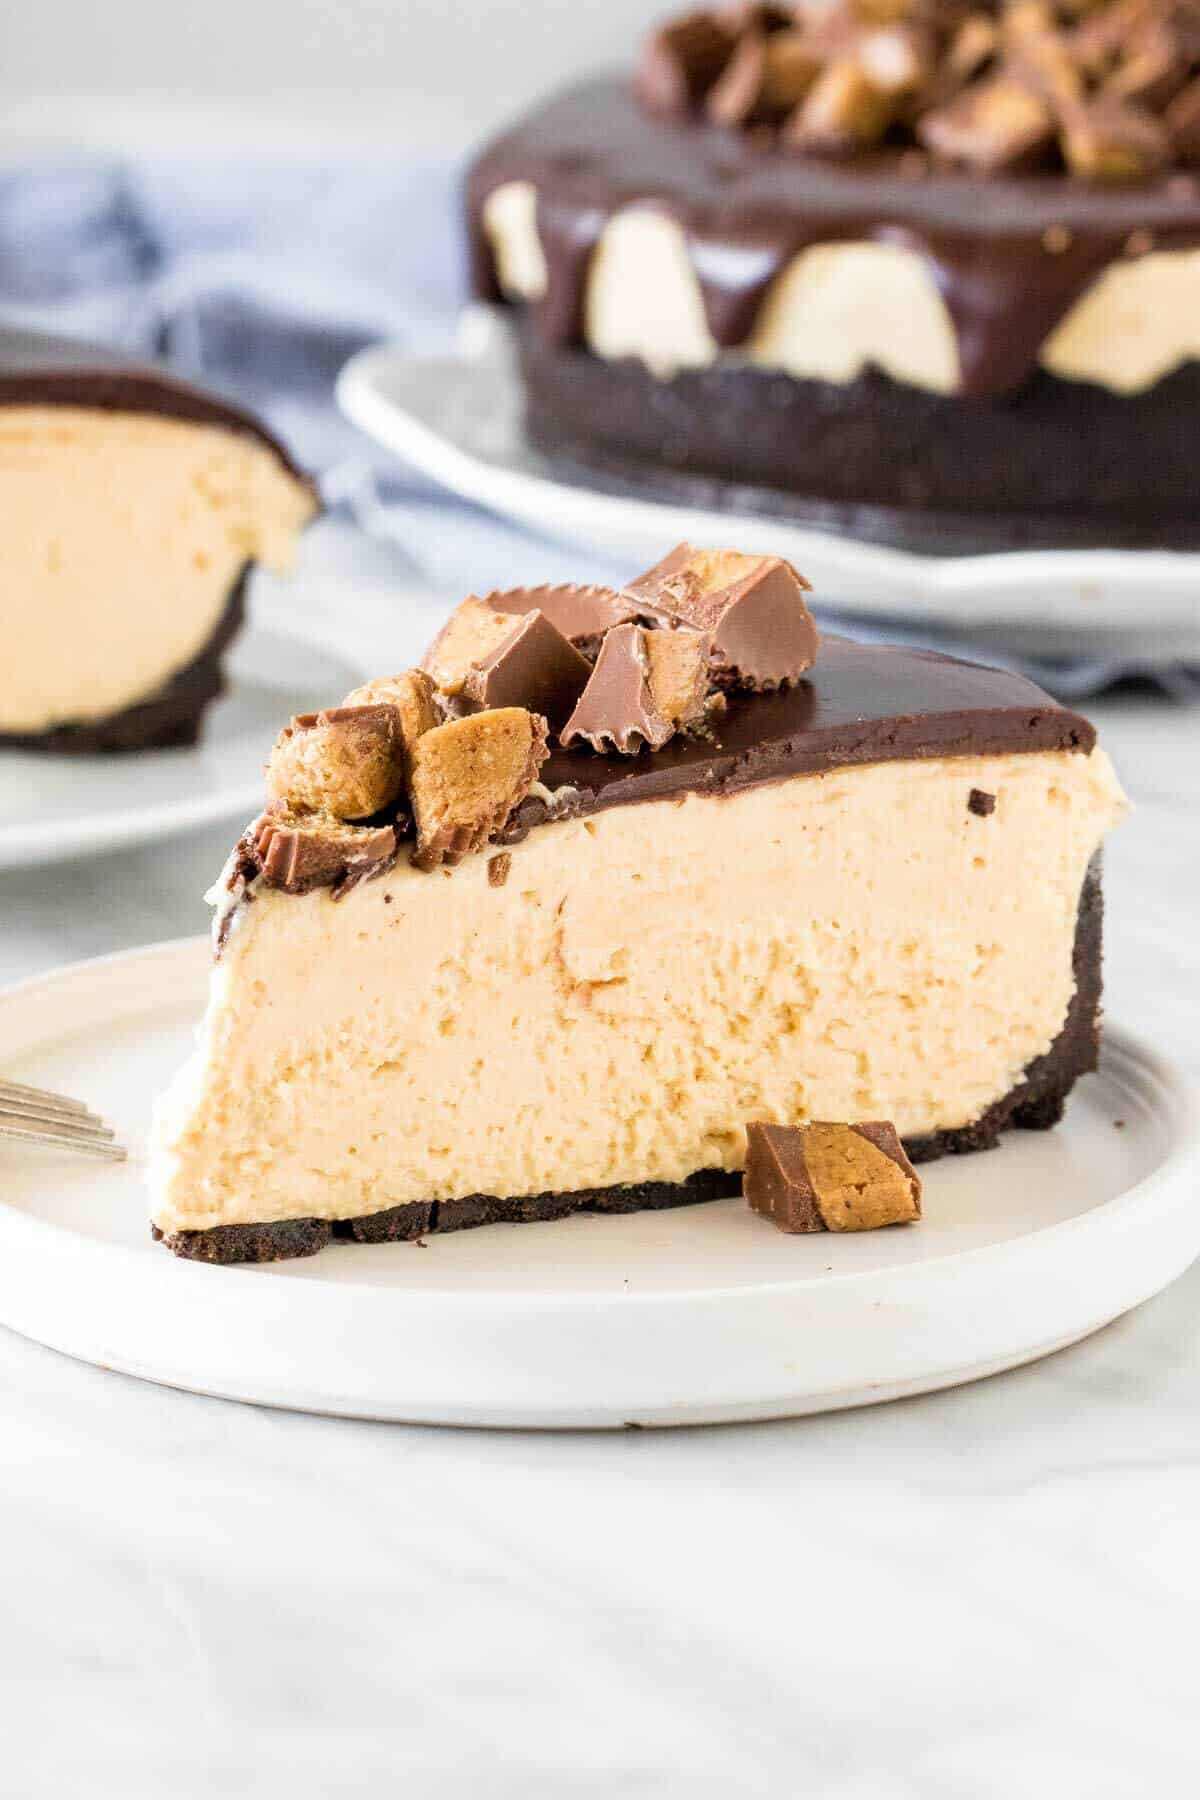 Slice of no-bake peanut butter cheesecake with peanut butter cups on top.